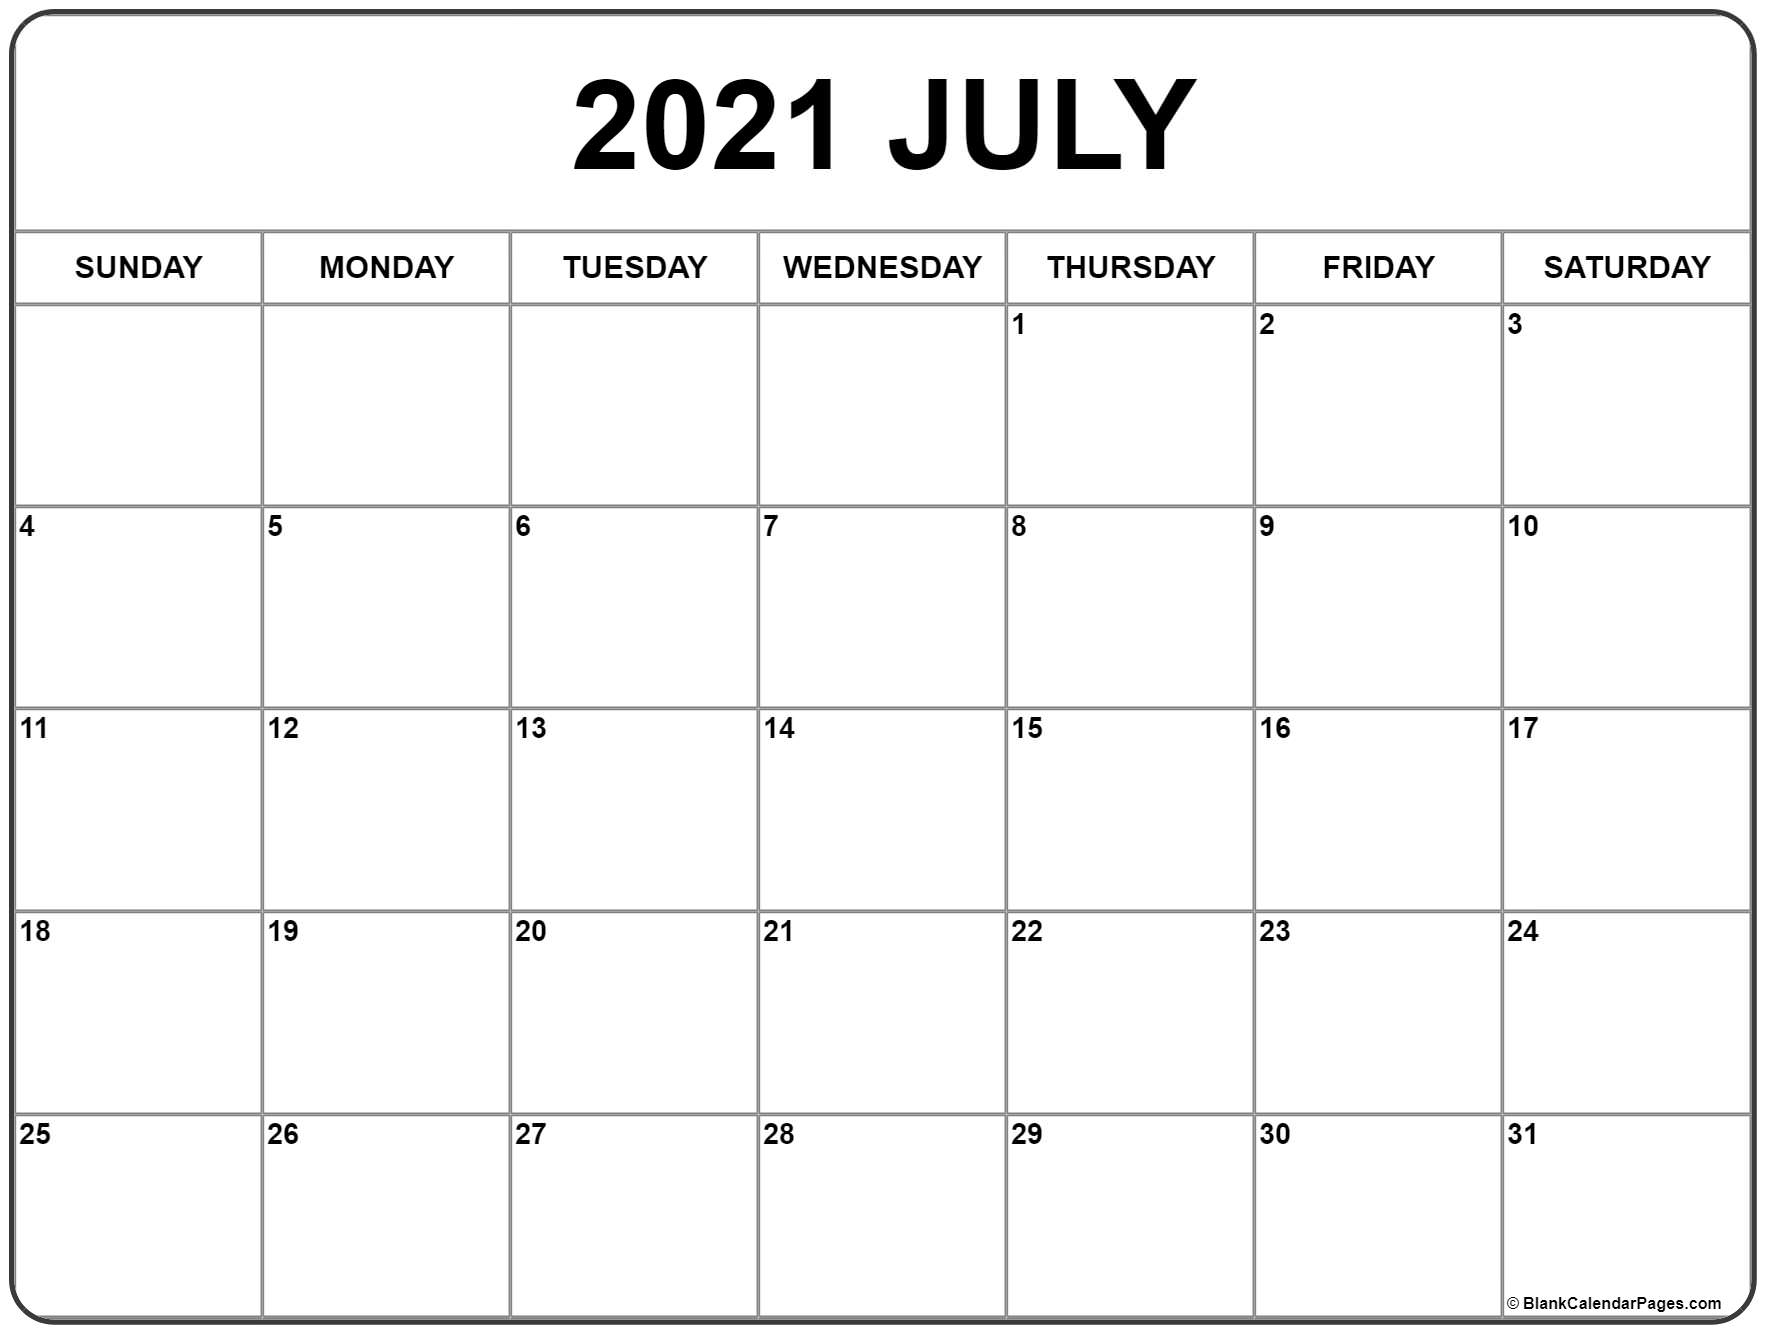 Catch July 2021 Calendar Template